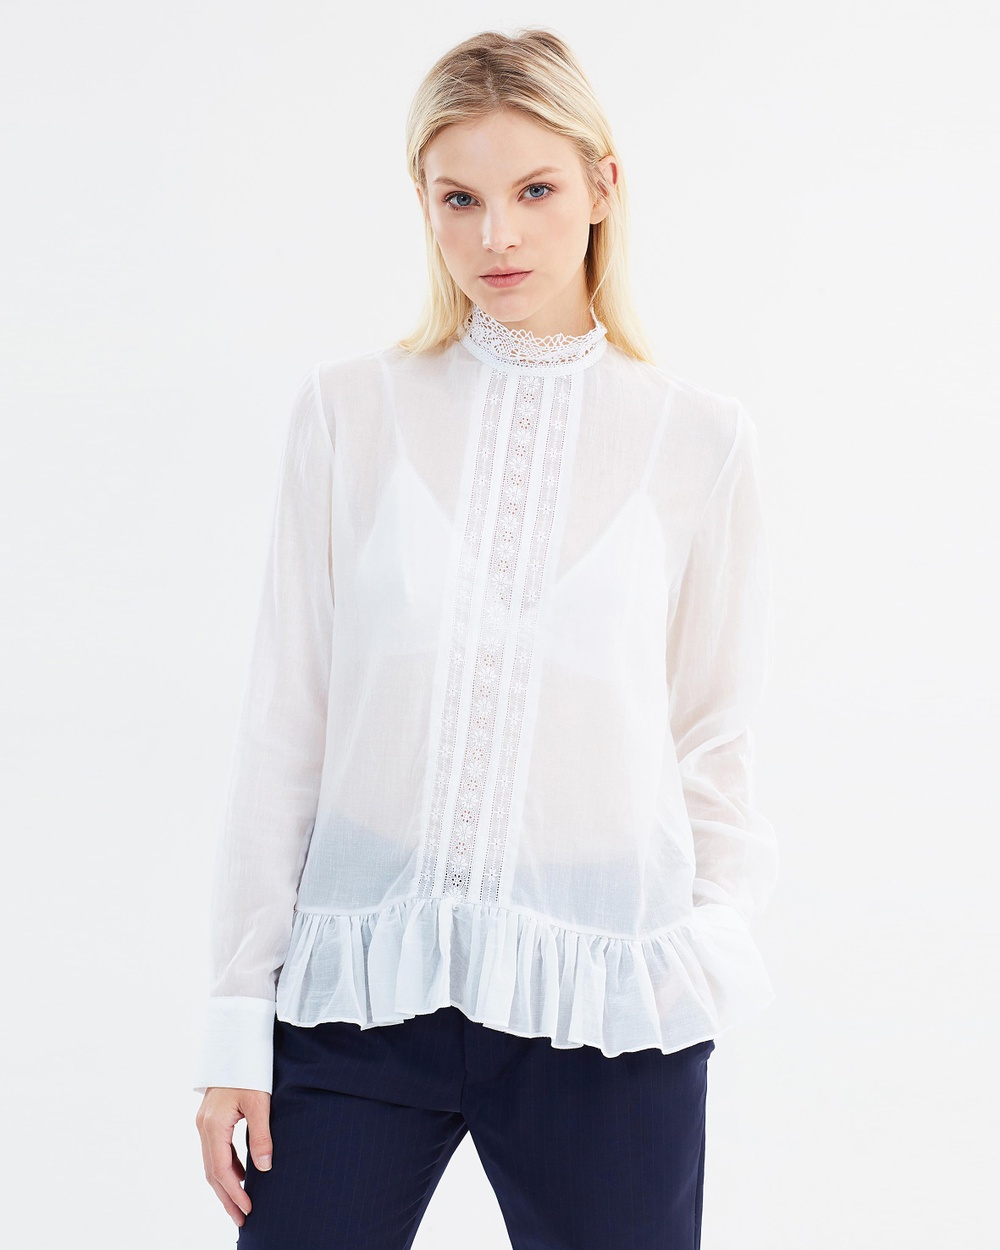 Matin Almere Lace Trim Top Tops White Almere Lace Trim Top